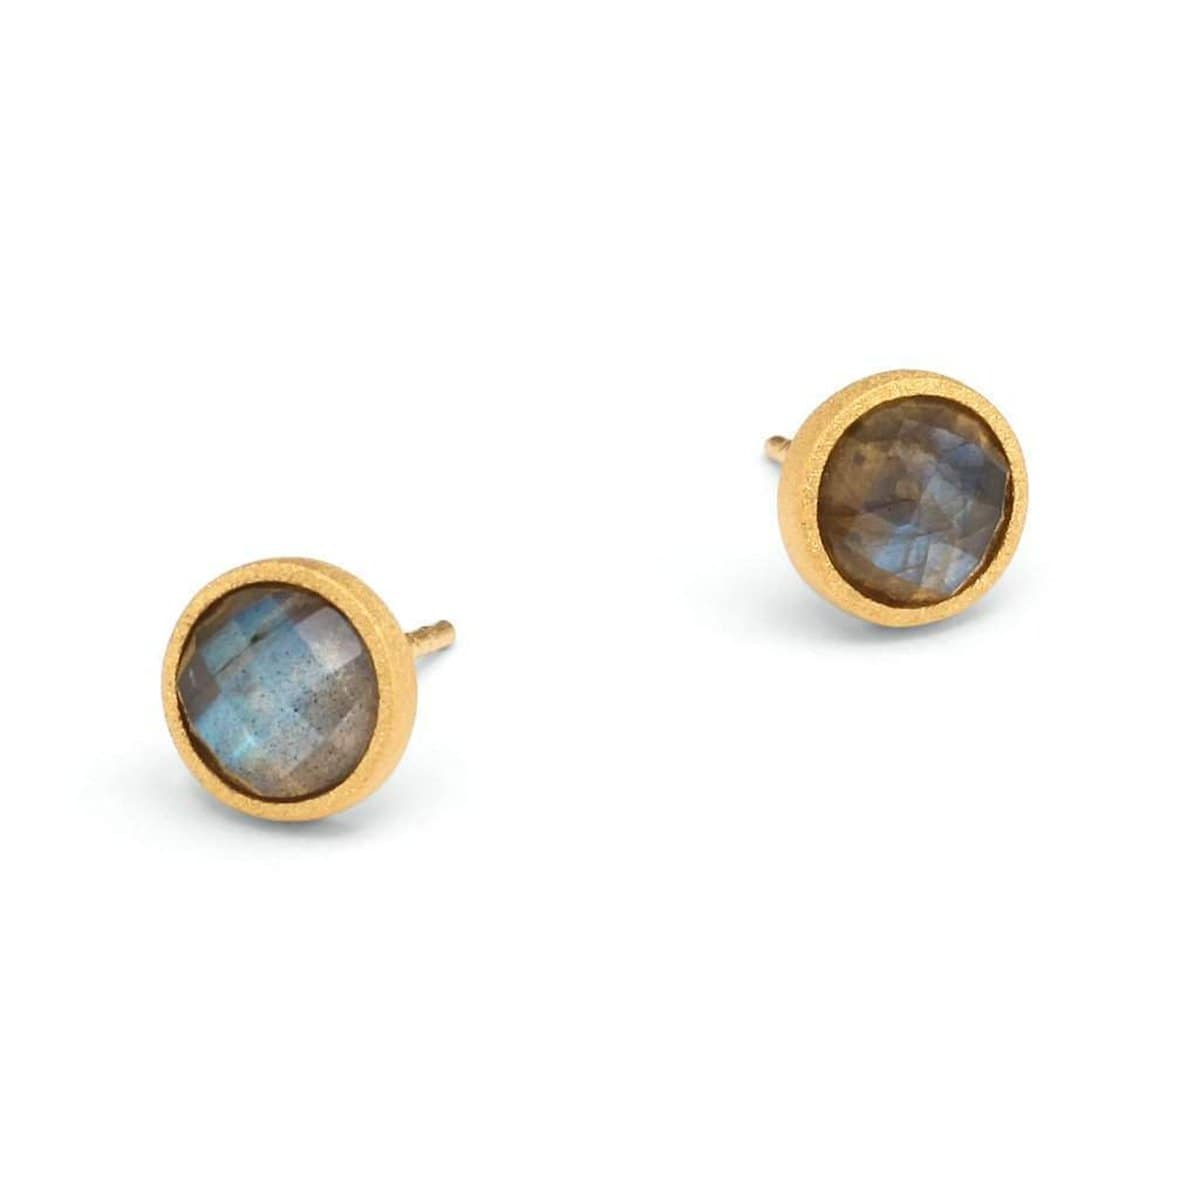 Rubini Labradorite Earrings - 19295616